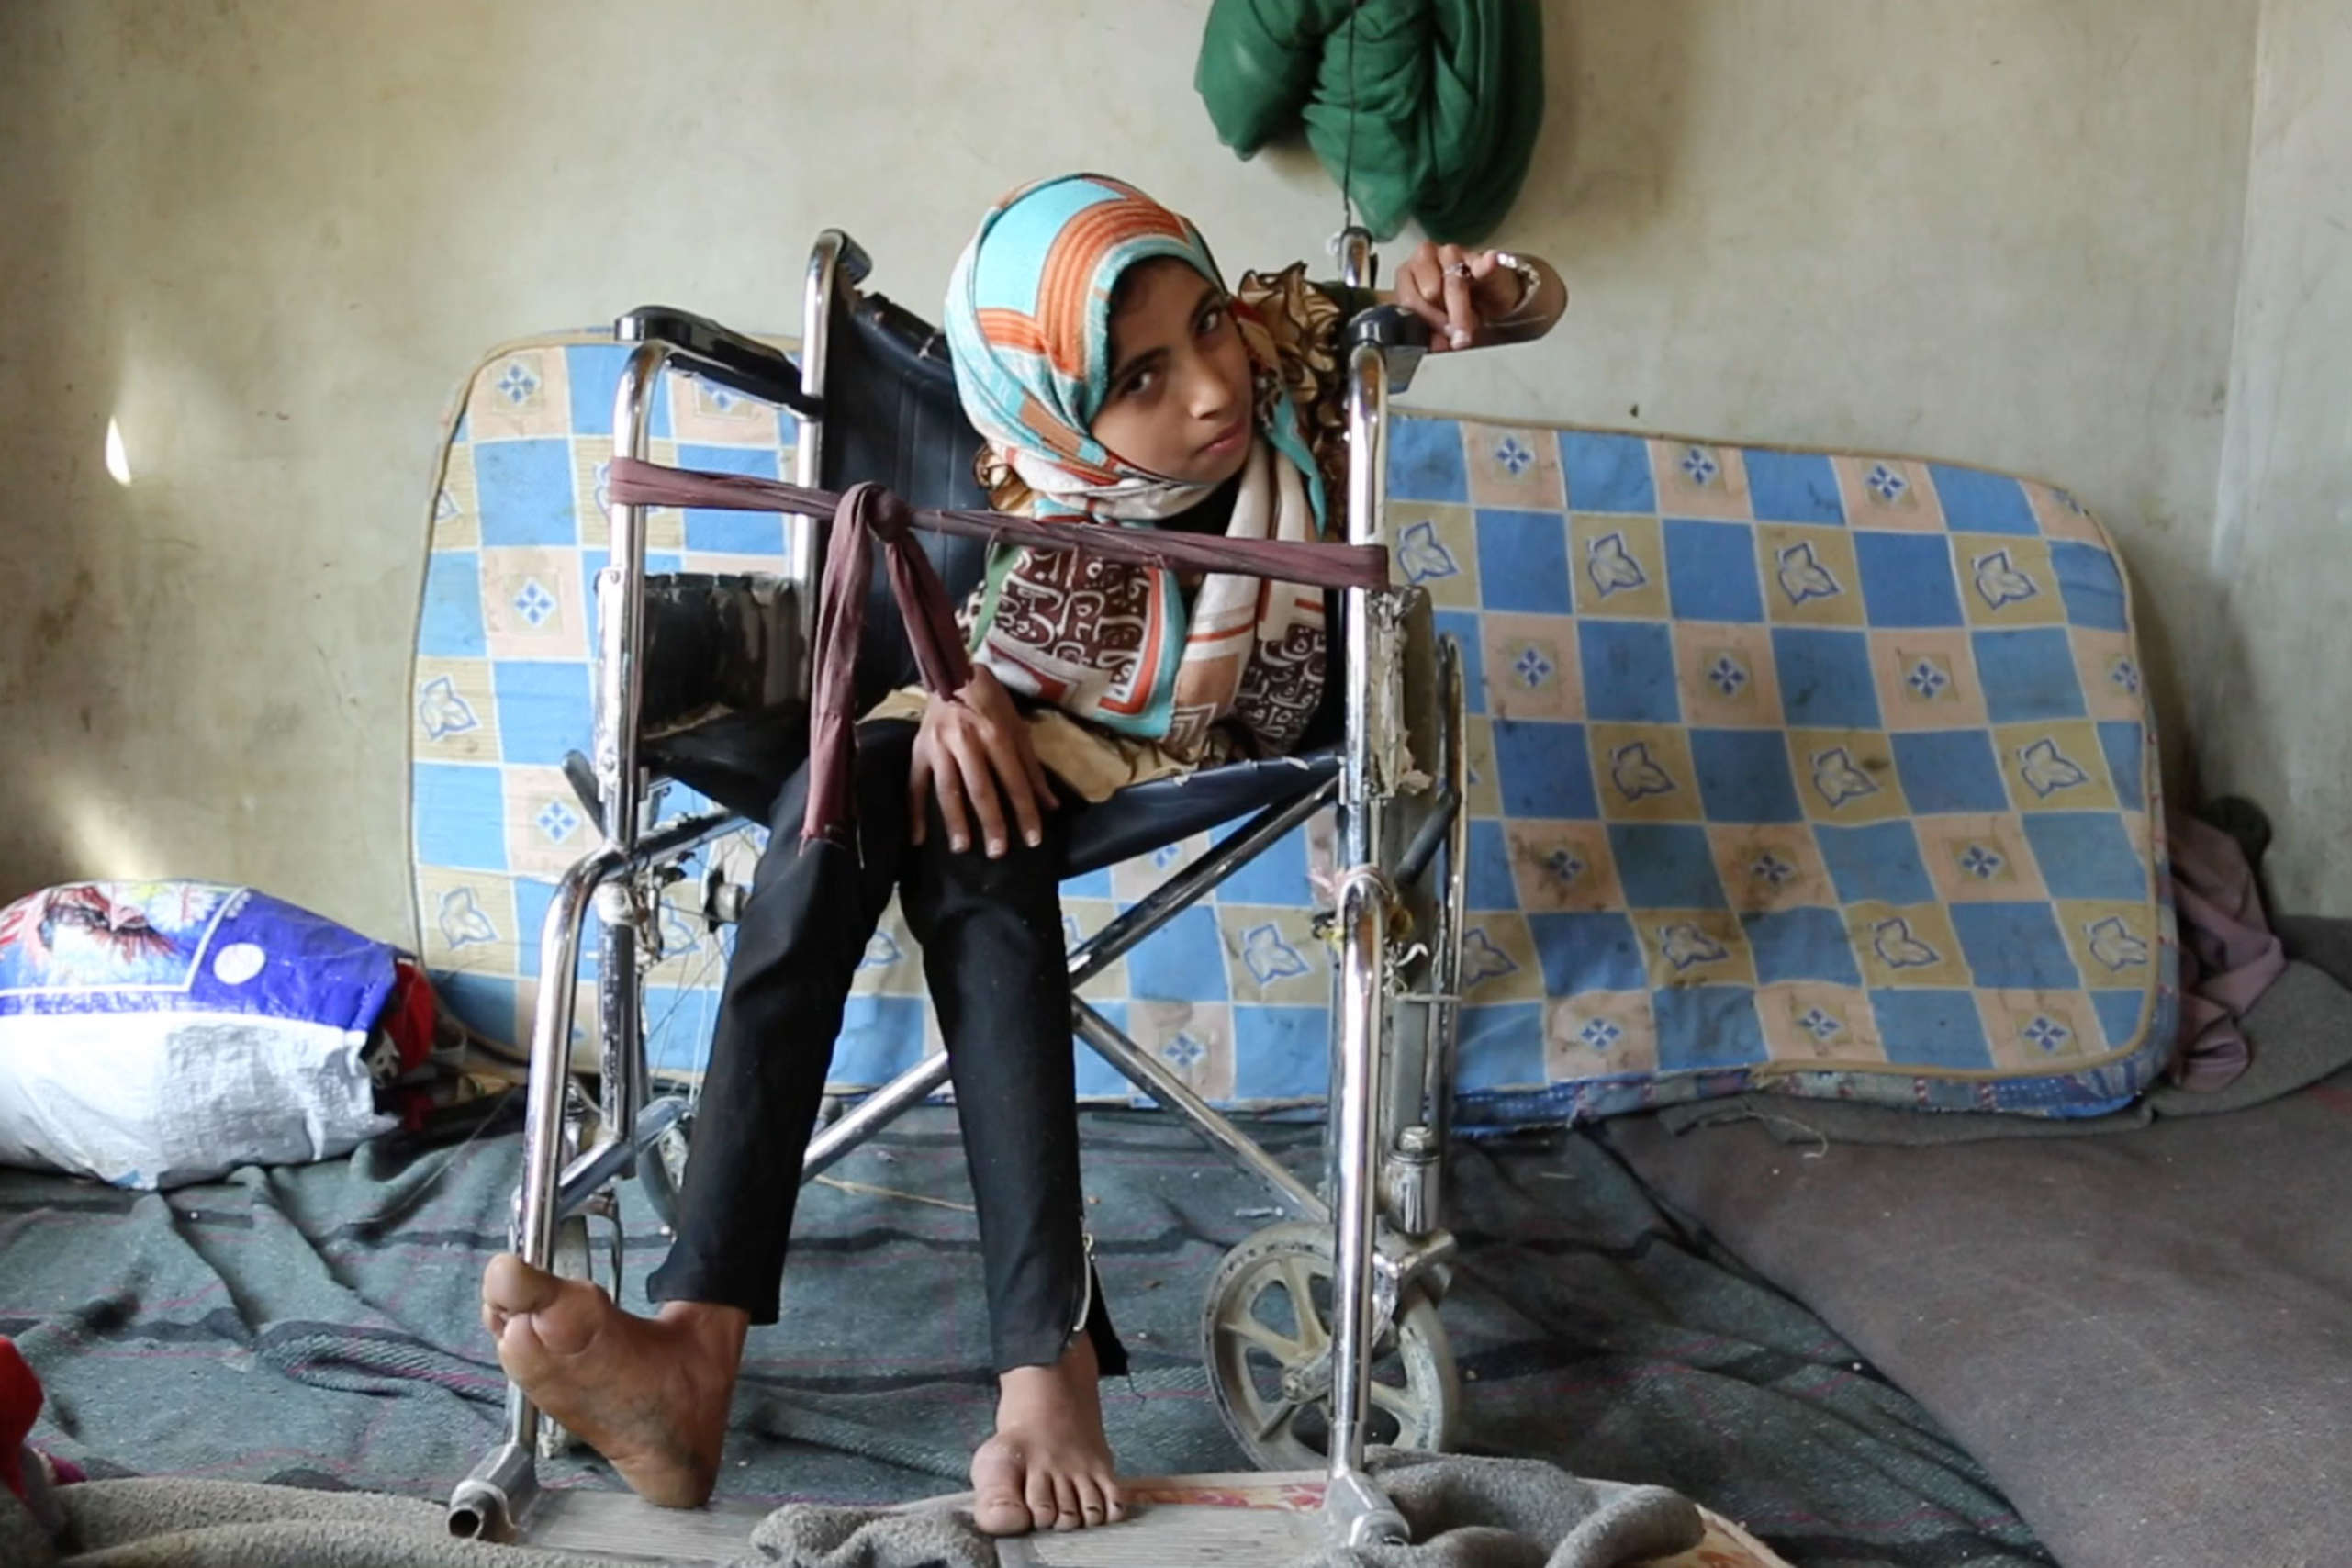 Noran,13, was injured in an airstrike in Yemen. She fell and twisted her back.